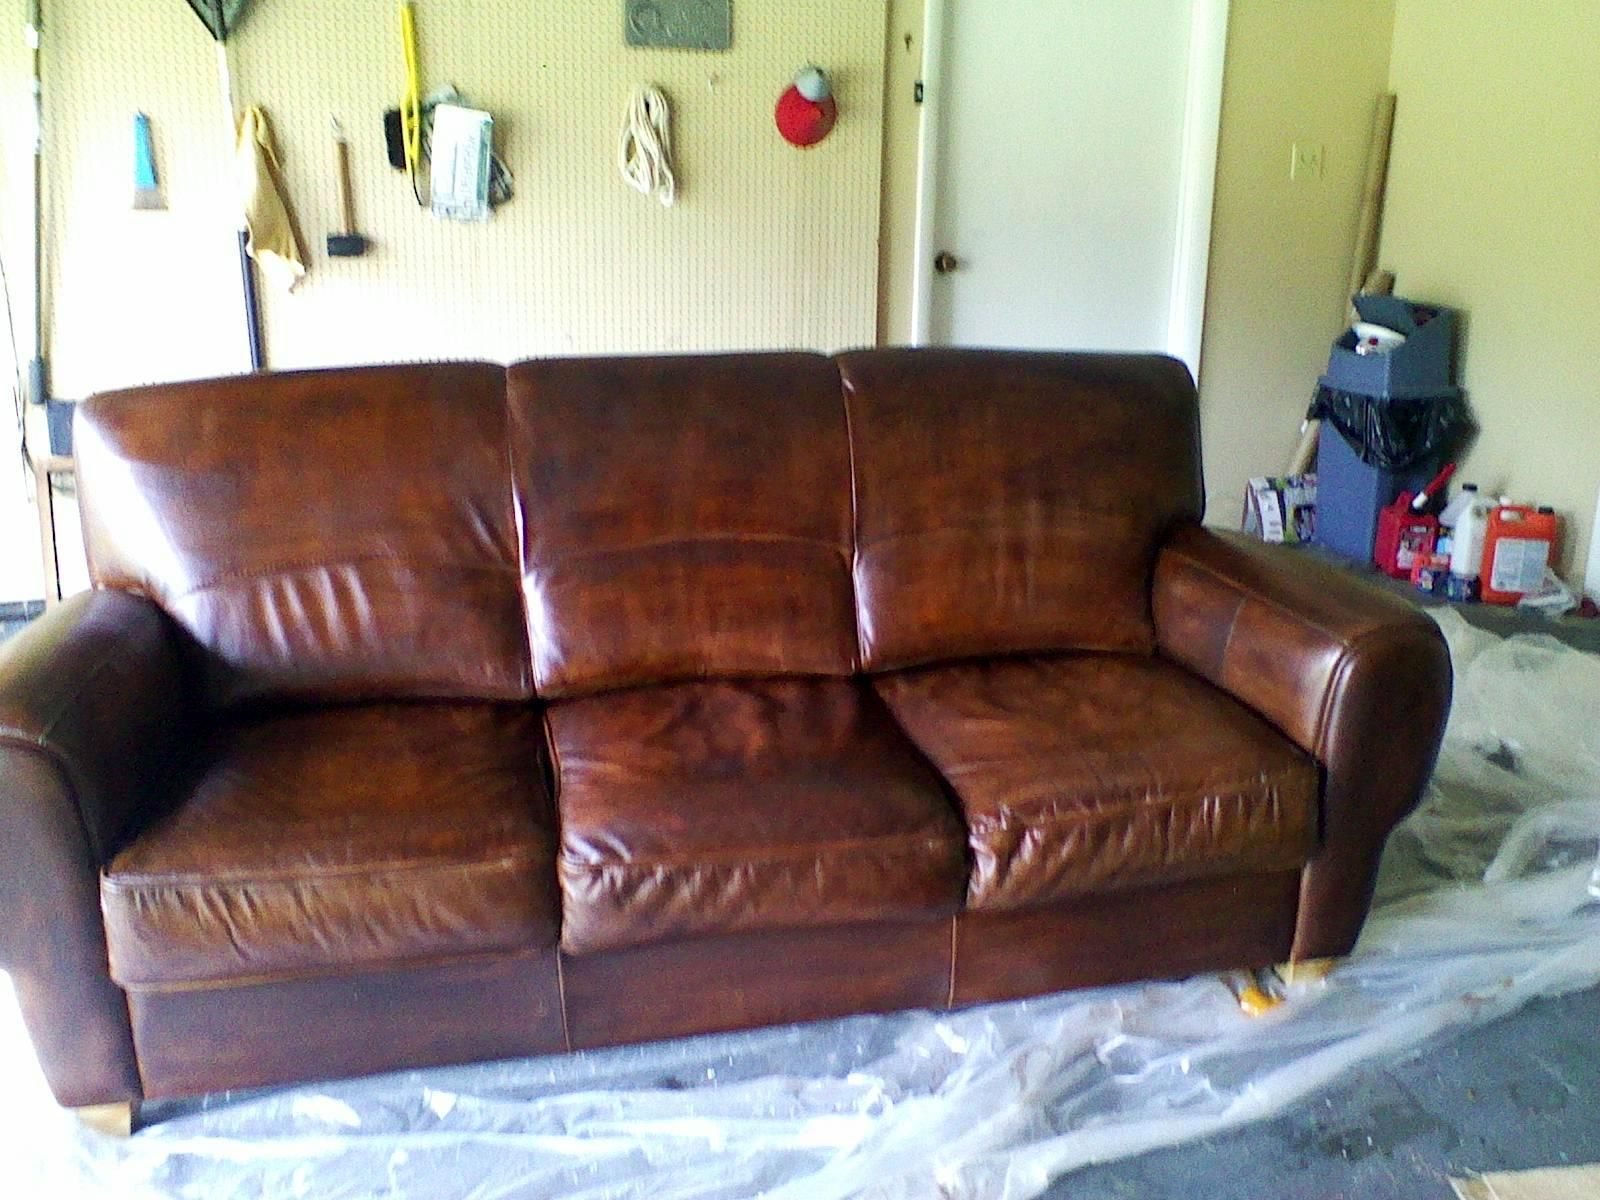 How To Dye Or Stain Leather Furniture Leather Furniture Red